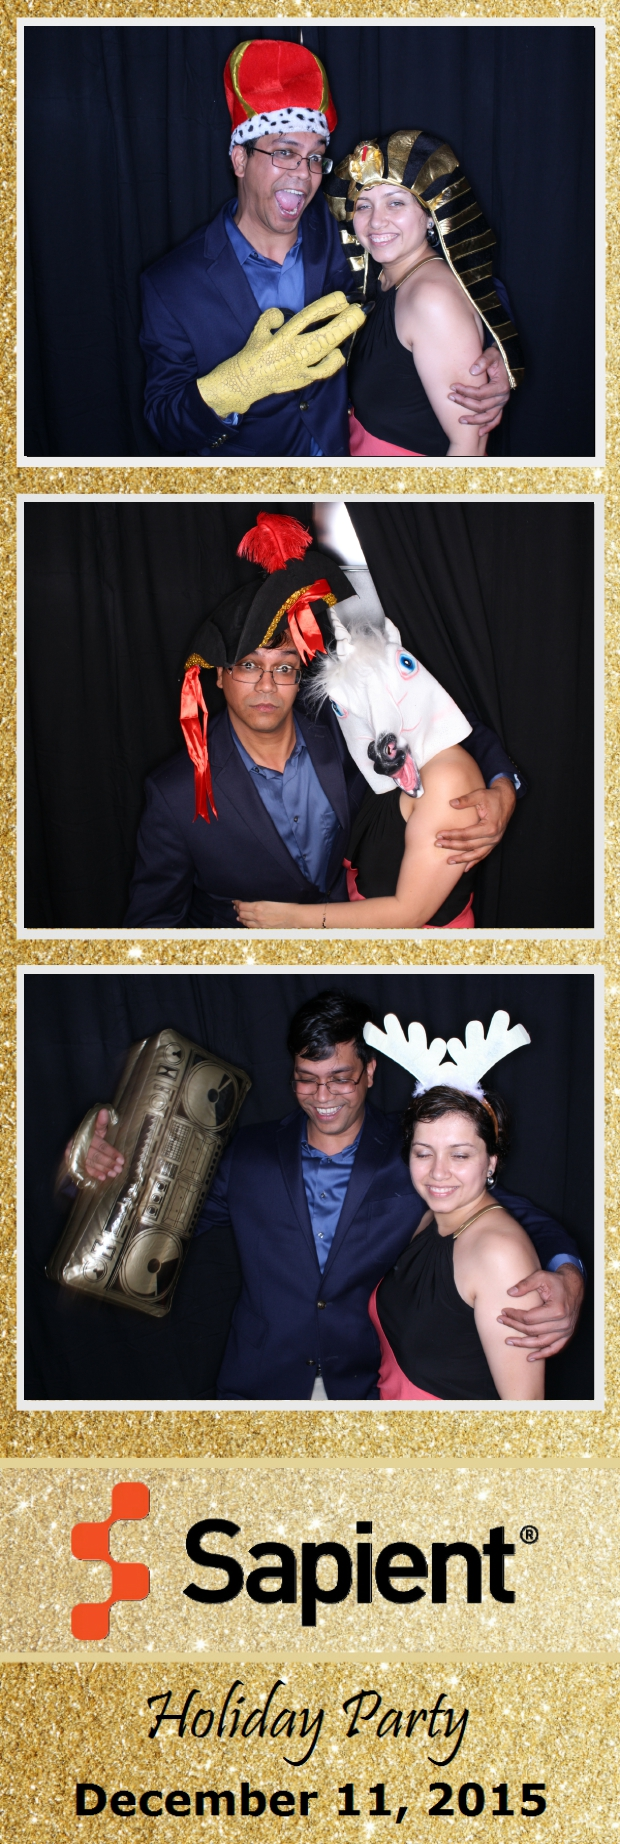 Guest House Events Photo Booth Sapient Holiday Party (66).jpg